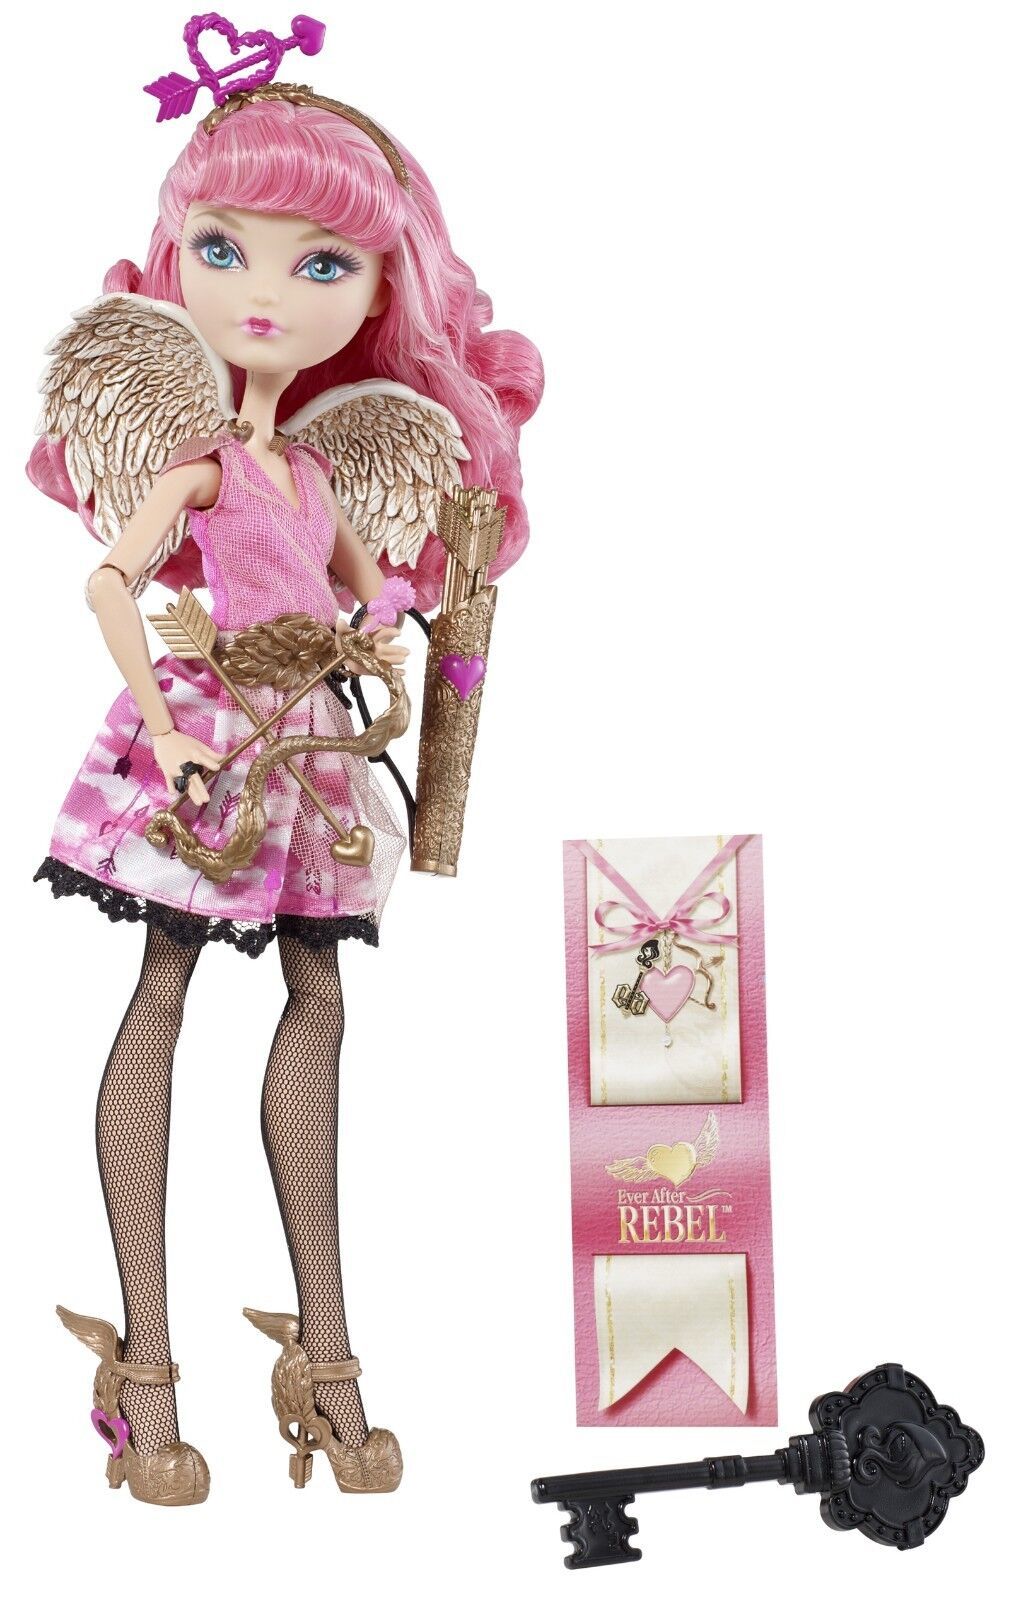 Ever After High C. A.Cupid Tochter Tochter Tochter von Eros REBEL OVP BDB09  |  Neuer Markt